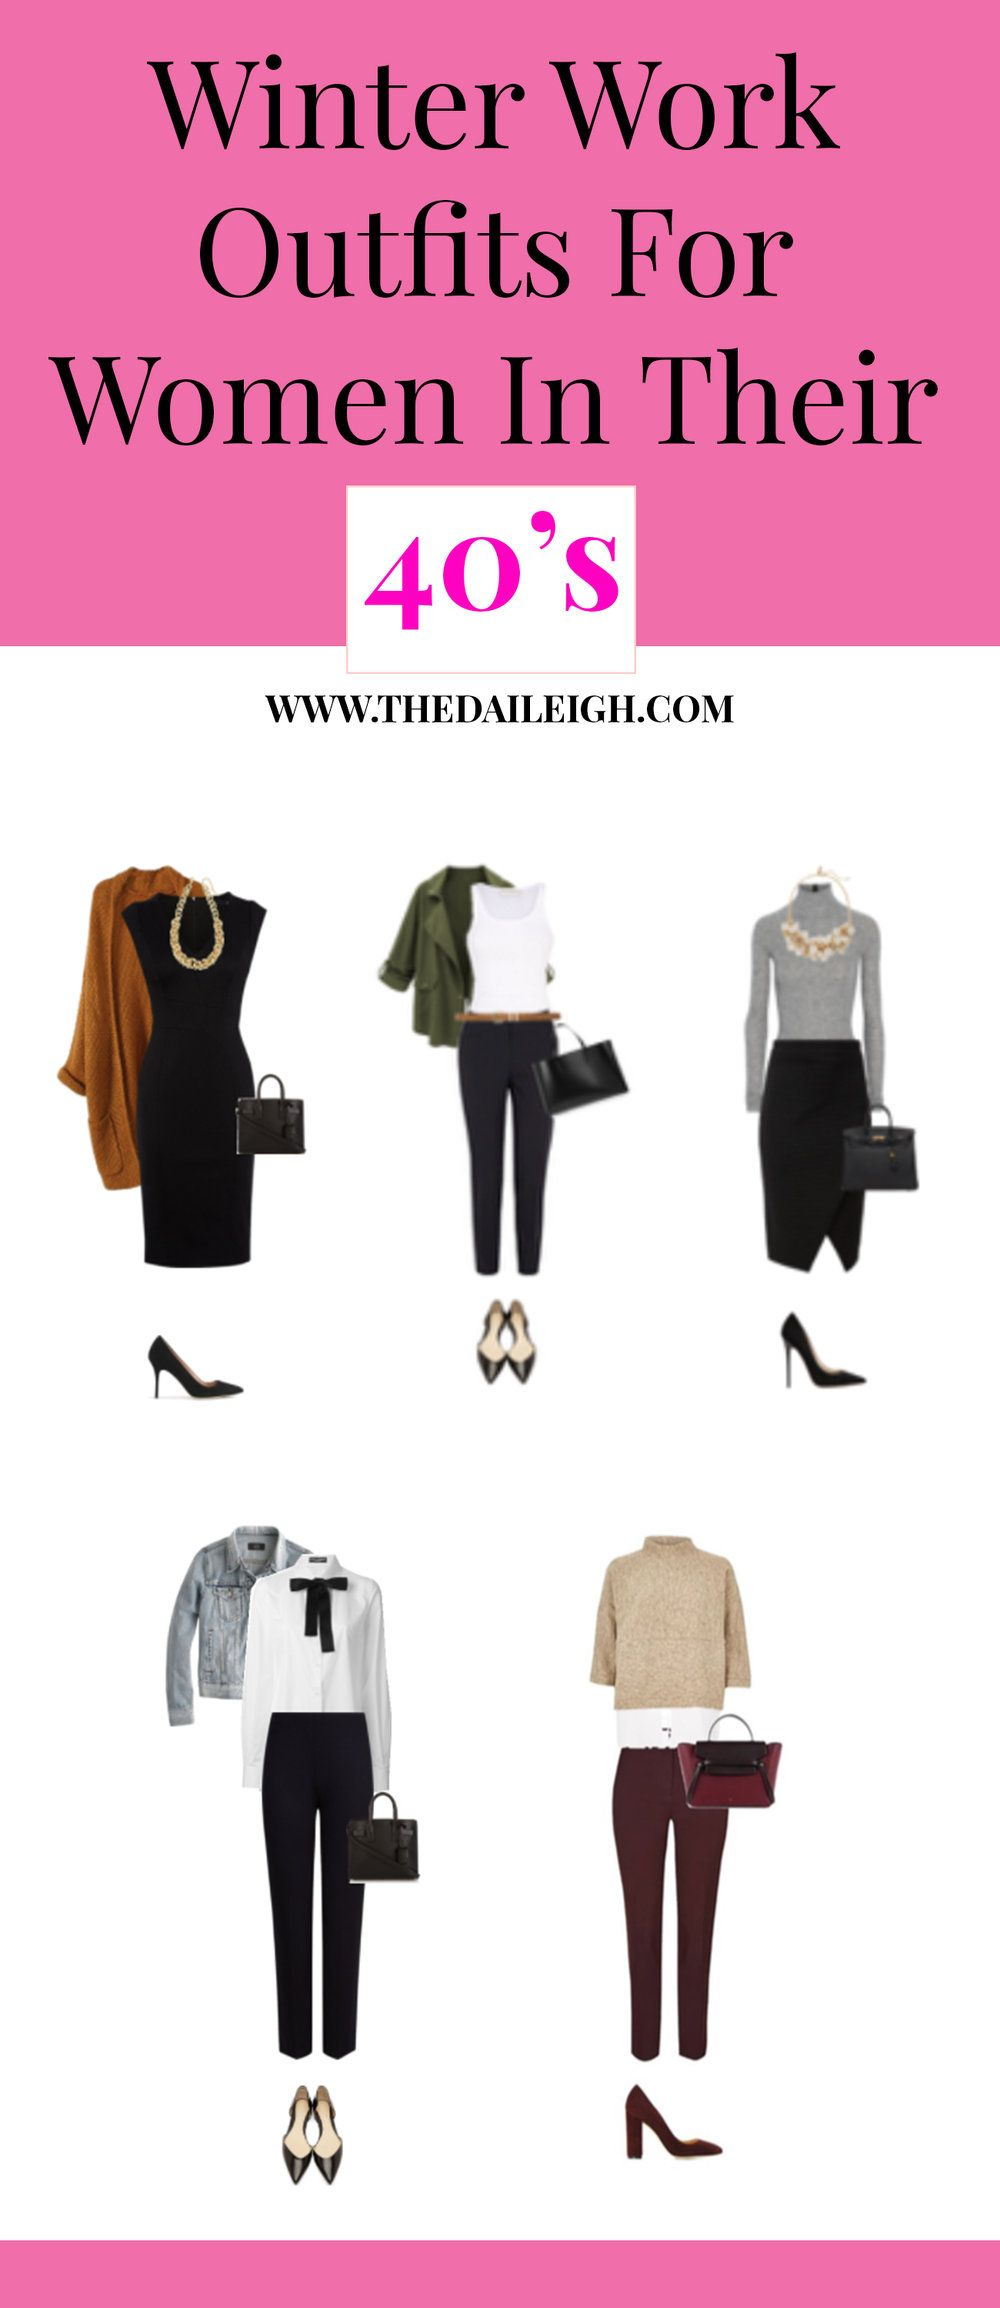 19+ Styles for women in their 40s ideas